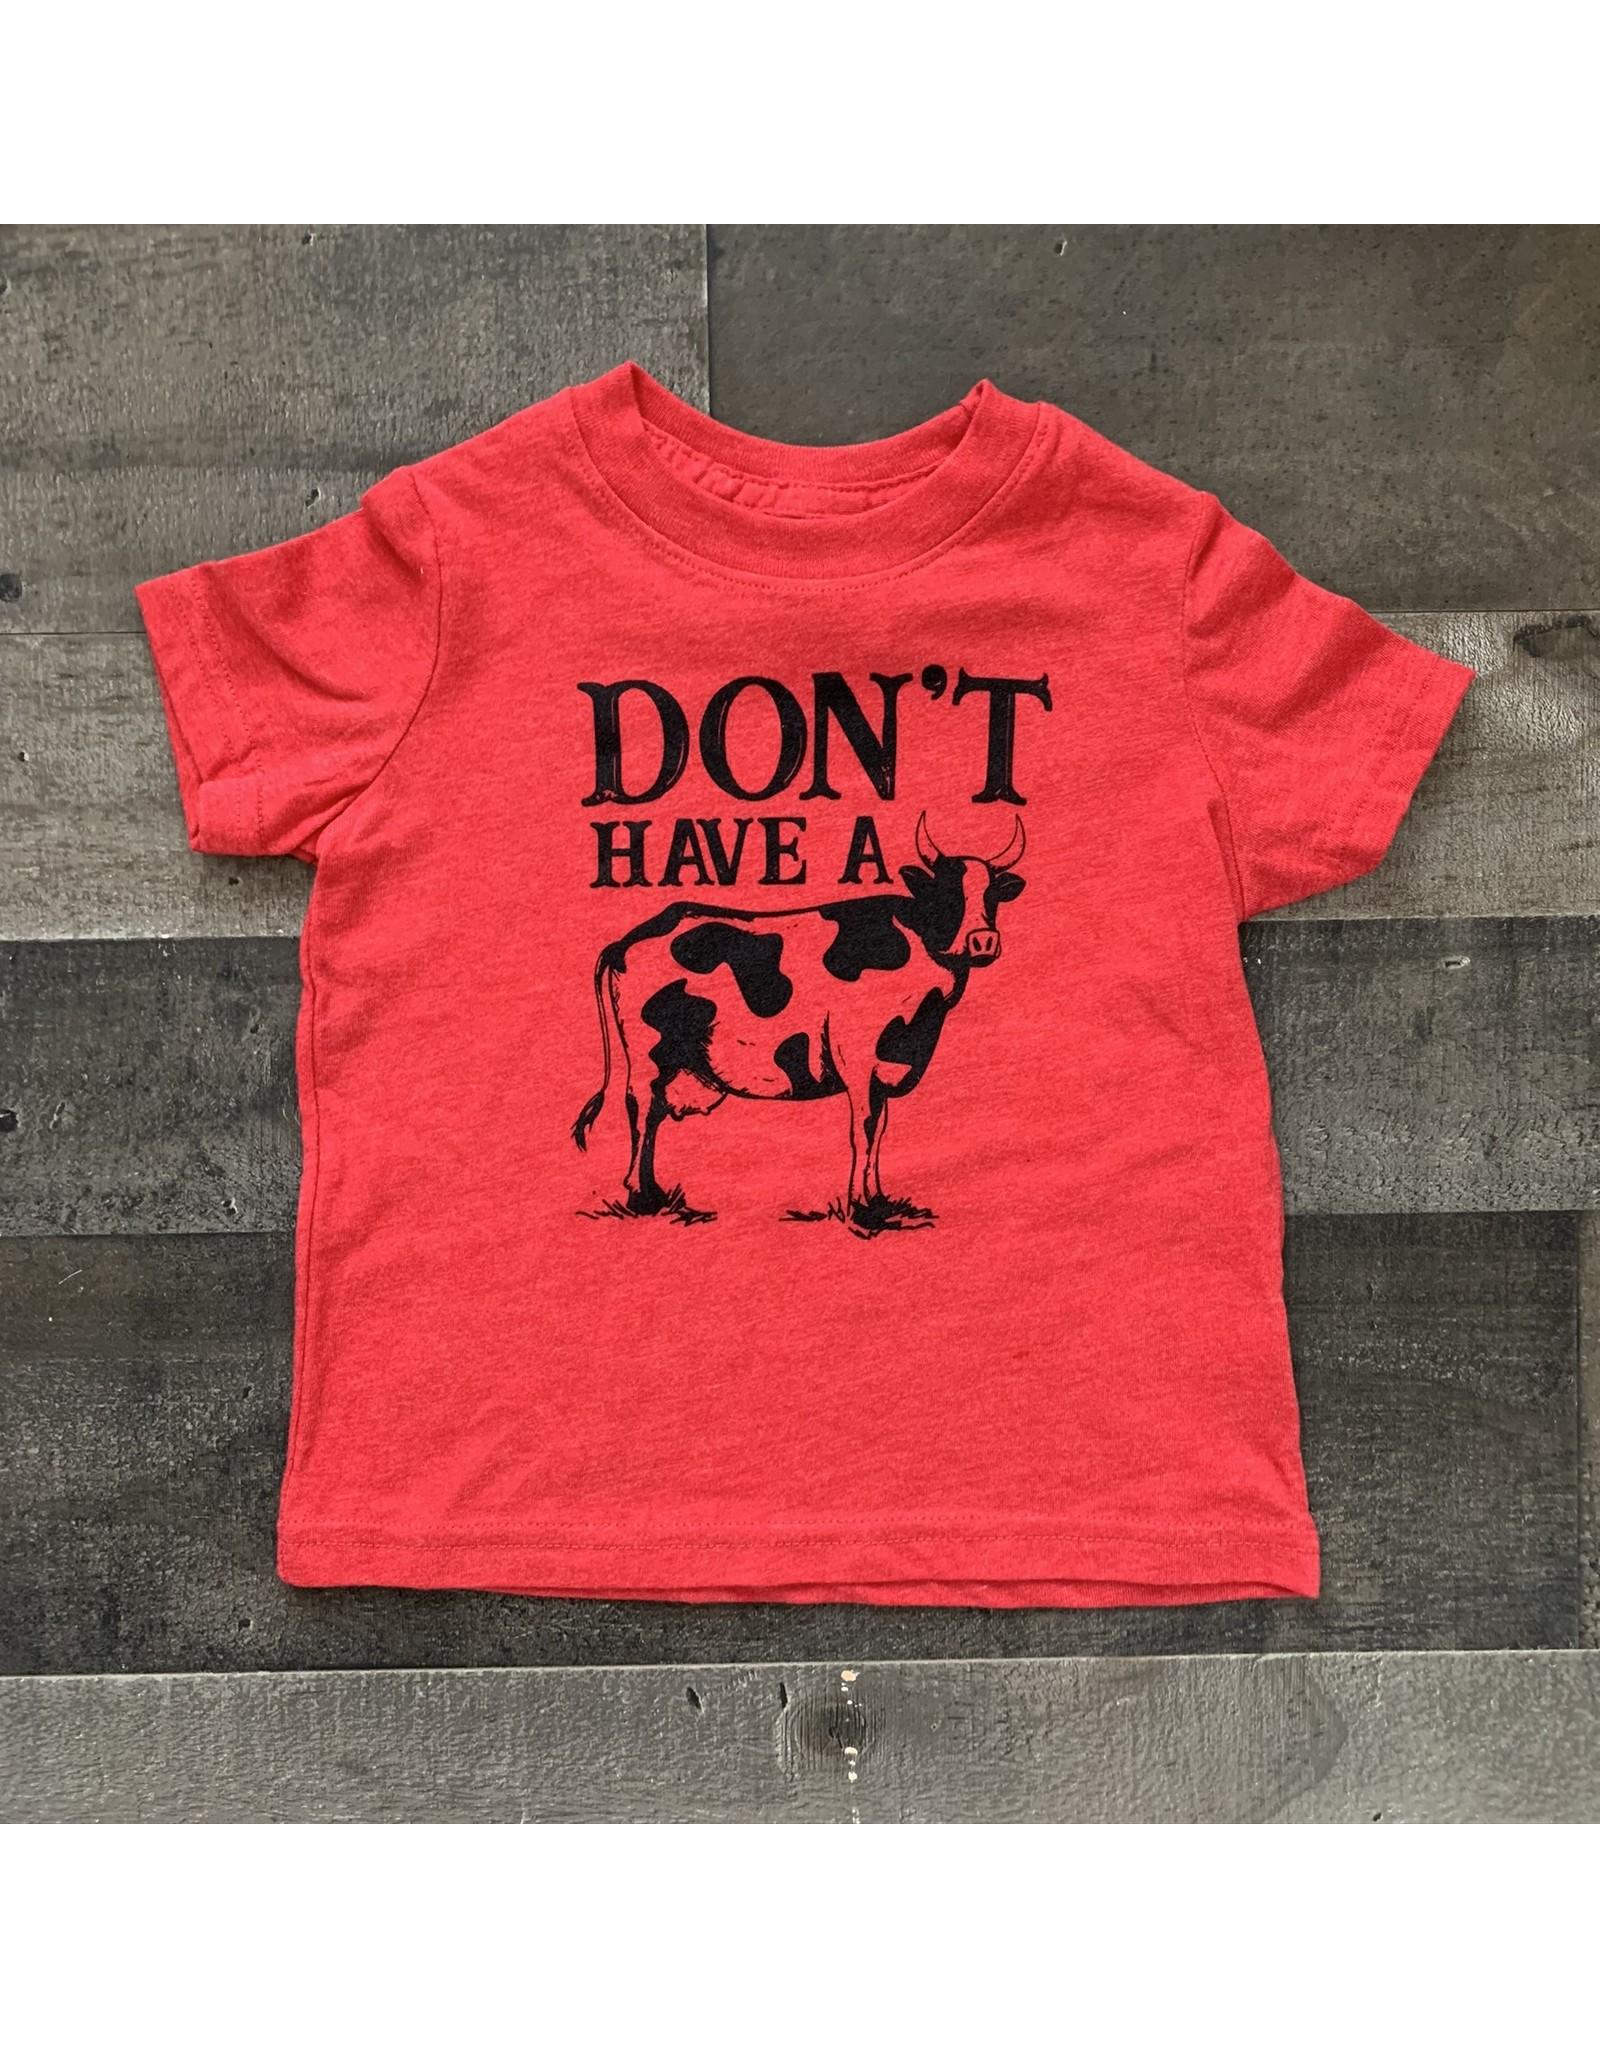 Don't Have a Cow Shirt: Red